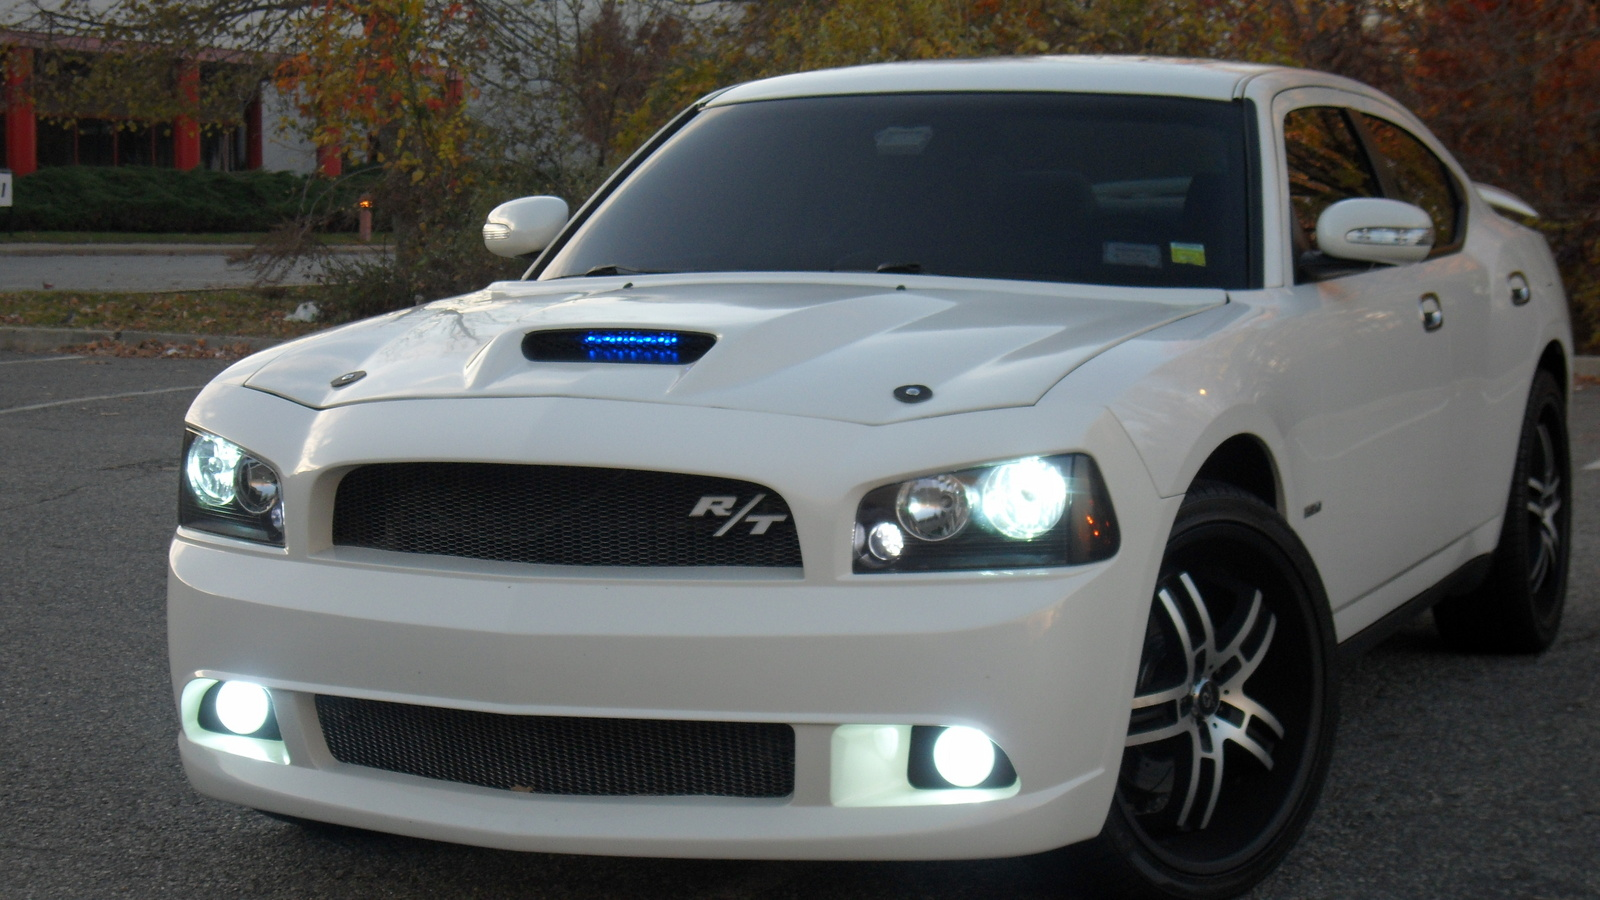 2006 Dodge Charger R/T AWD related infomation ...